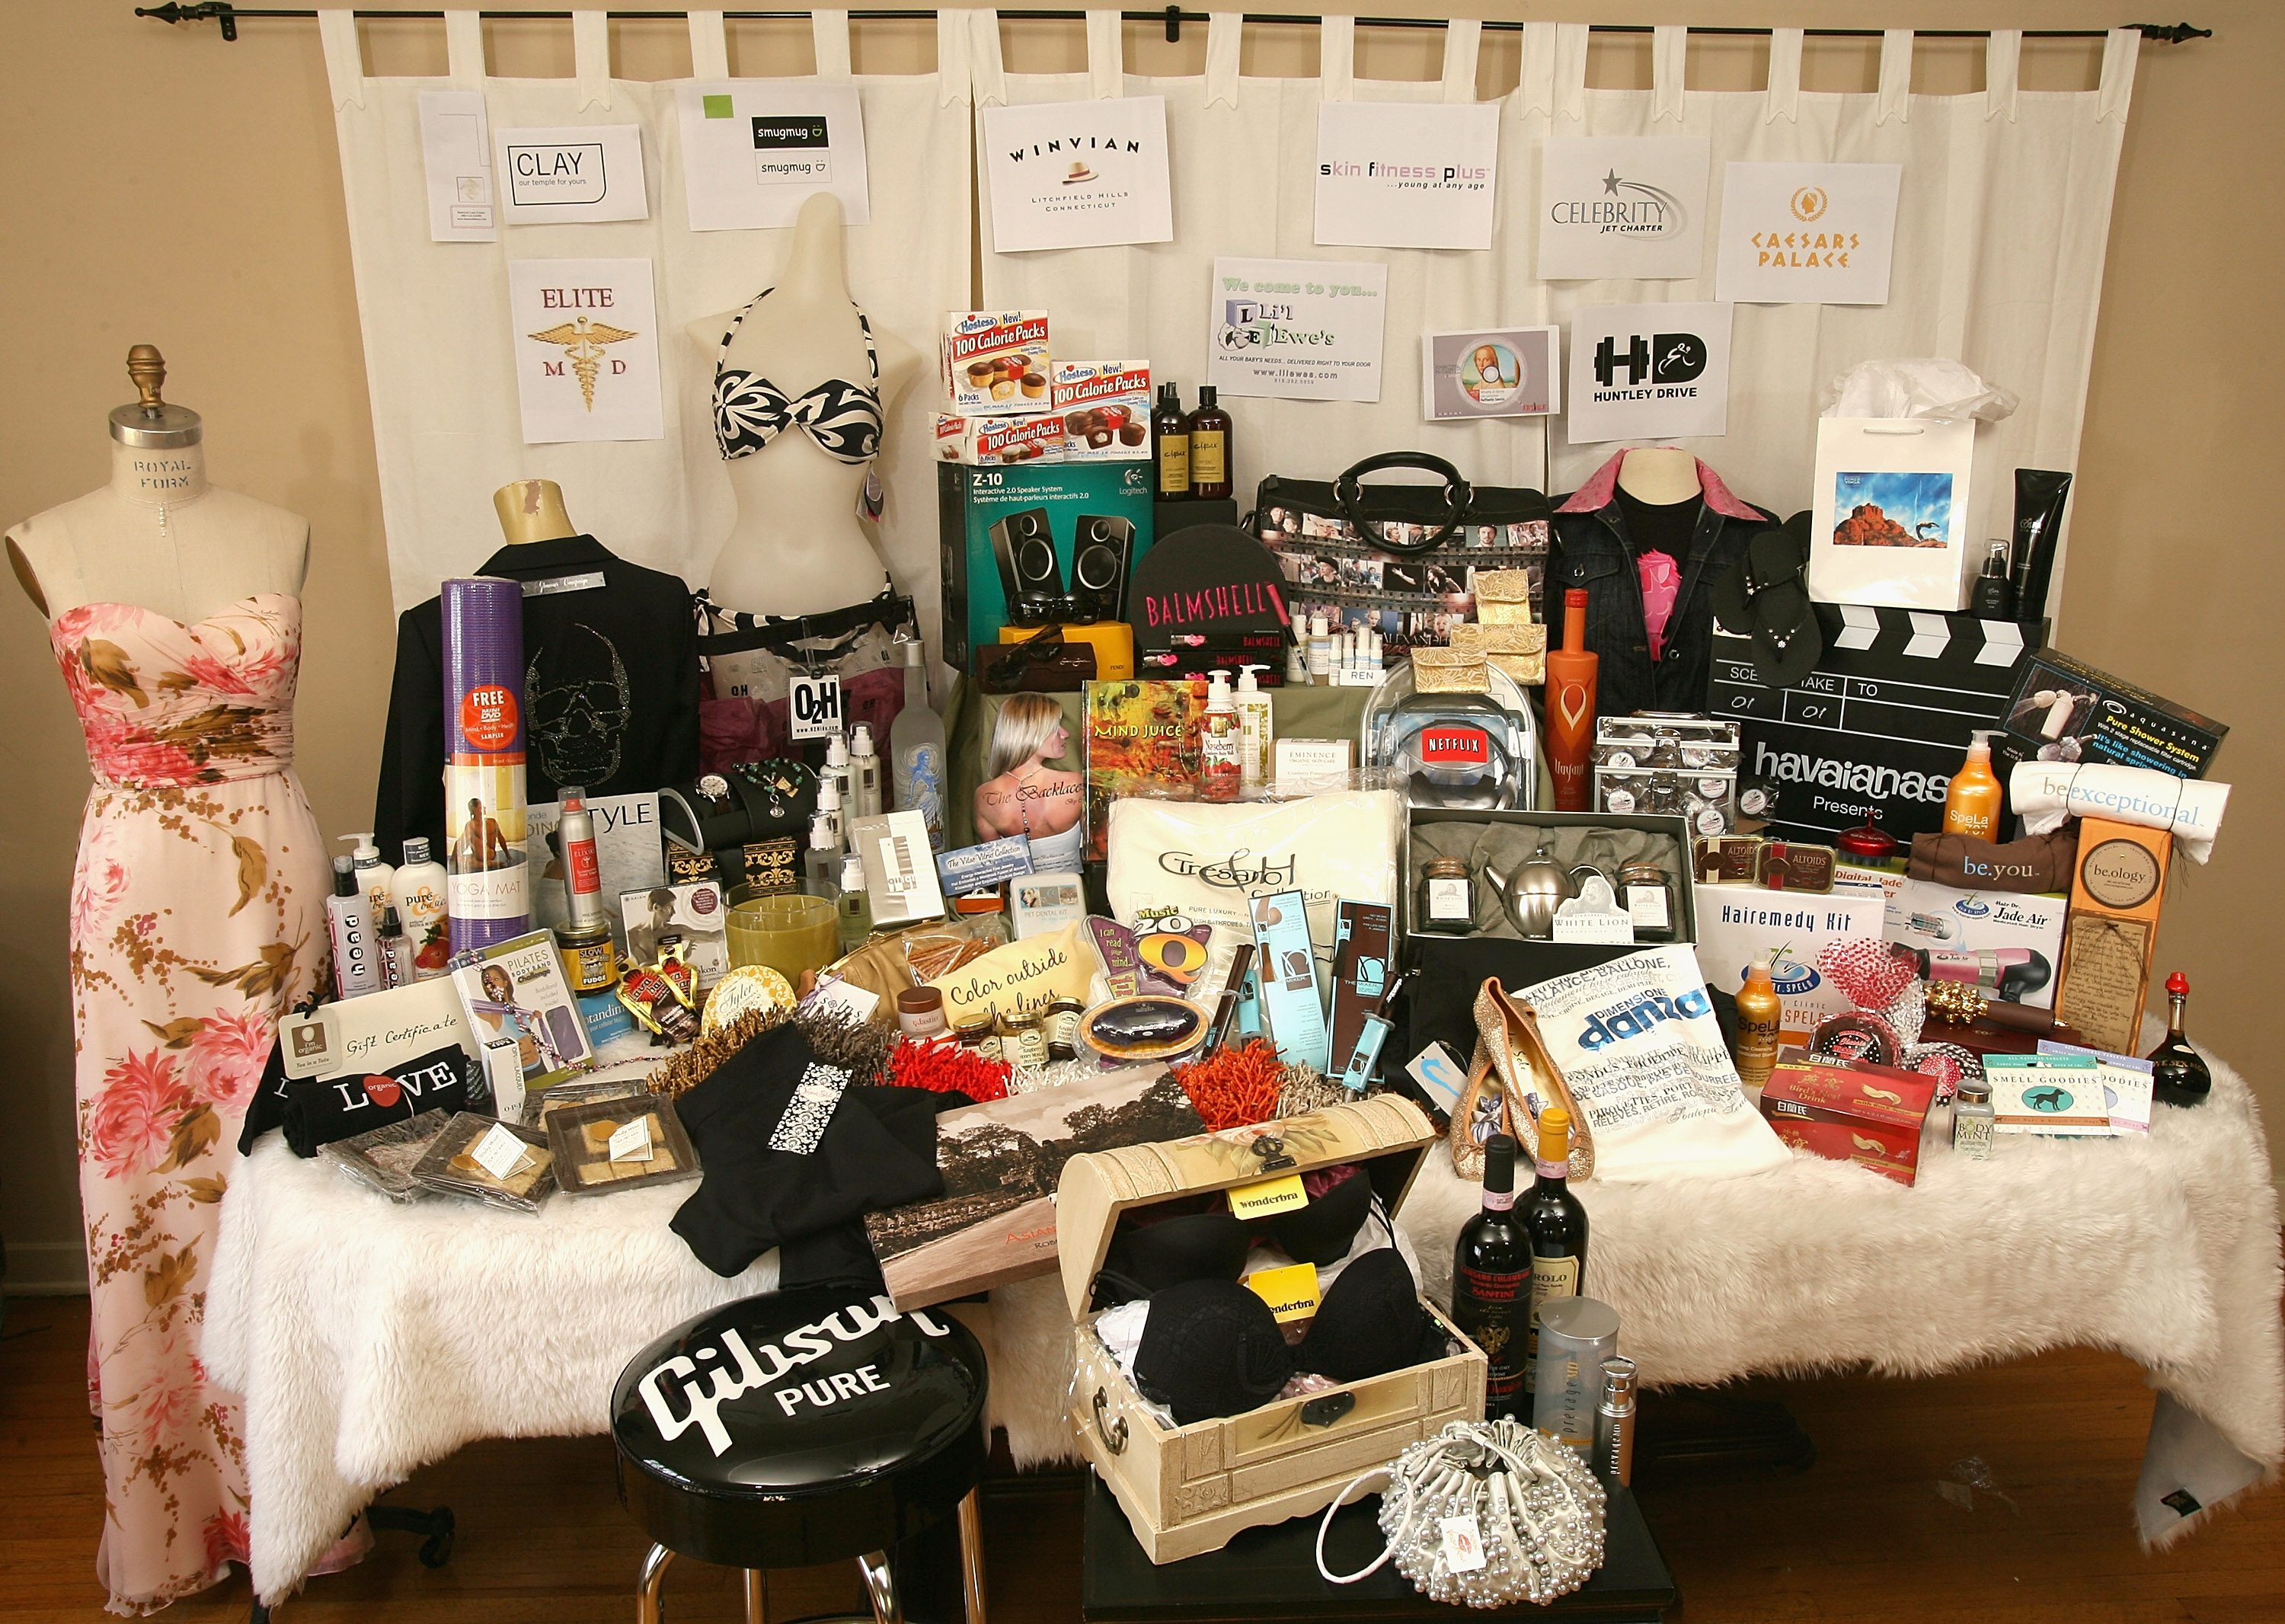 """The Distinctive Assets """"Everybody Wins at the Oscars"""" Nominee Gift Bag Presented by Caesars Palace and Wonderbra"""